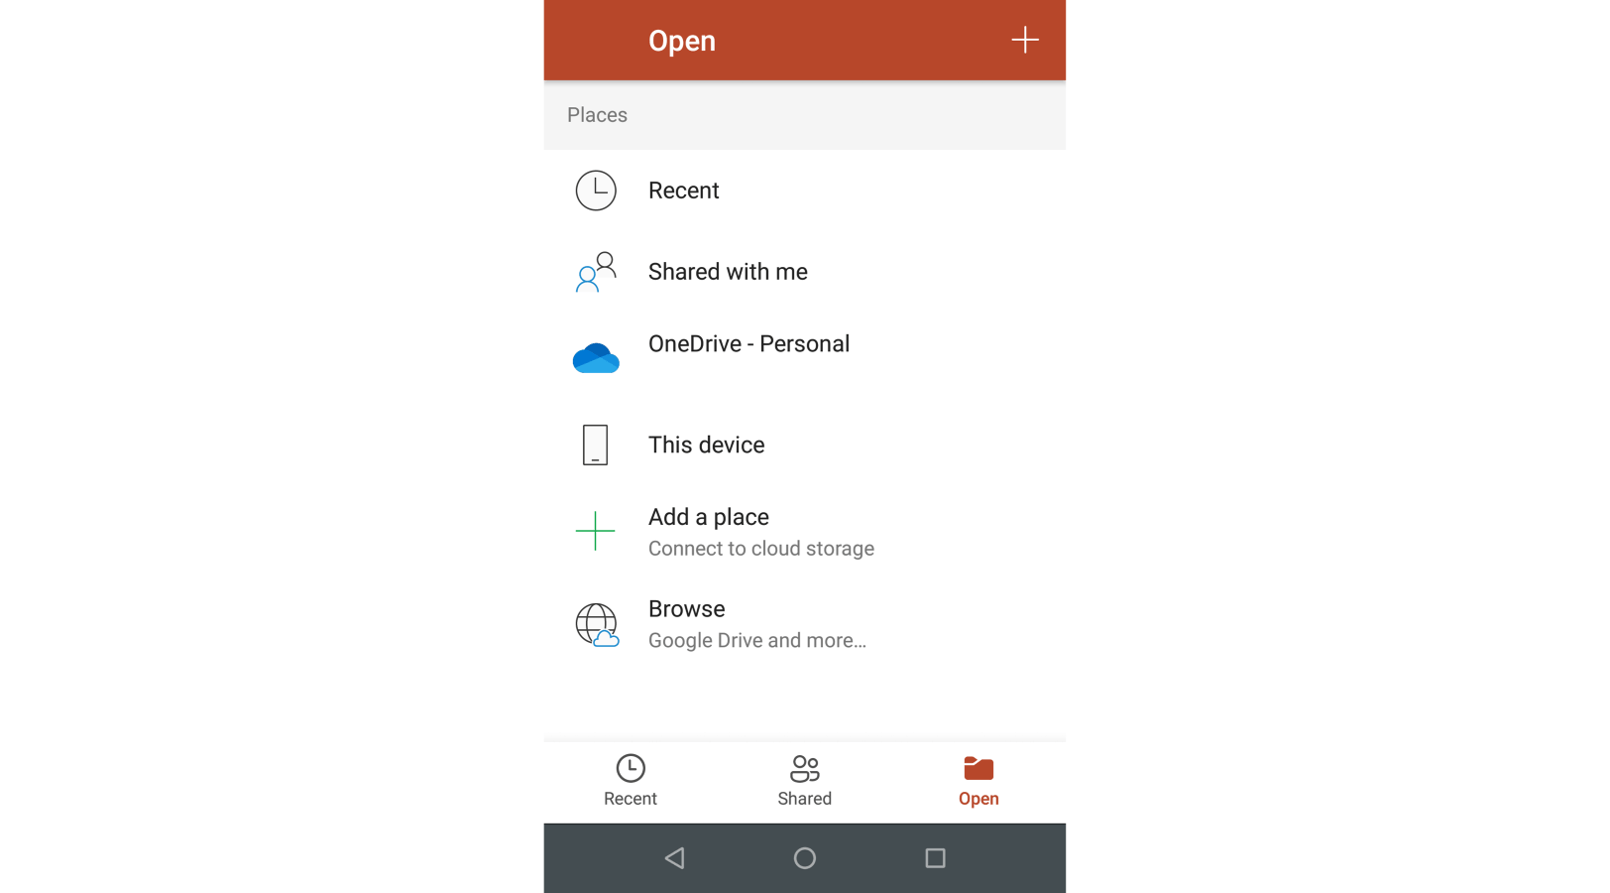 PowerPoint for Android Open presentation options